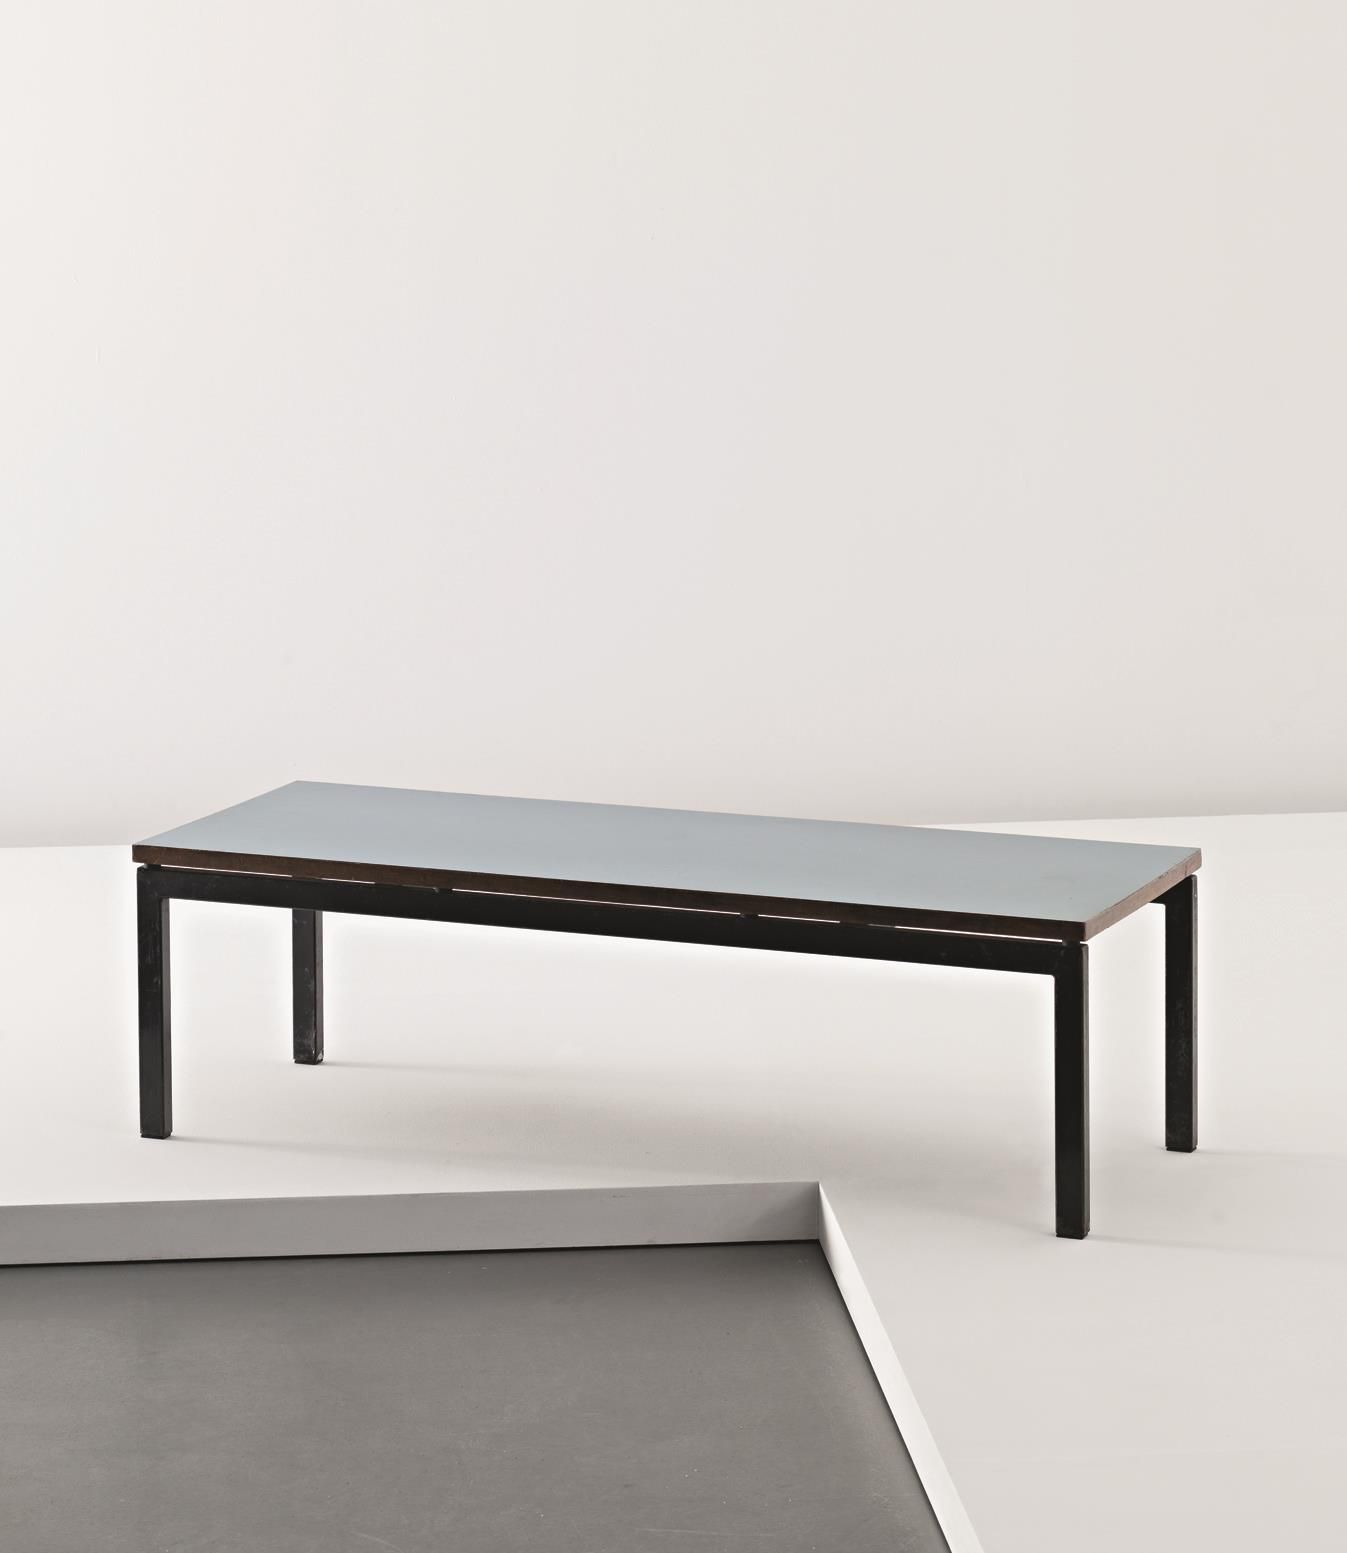 CHARLOTTE PERRIAND Low table 1958 Laminated wood painted steel